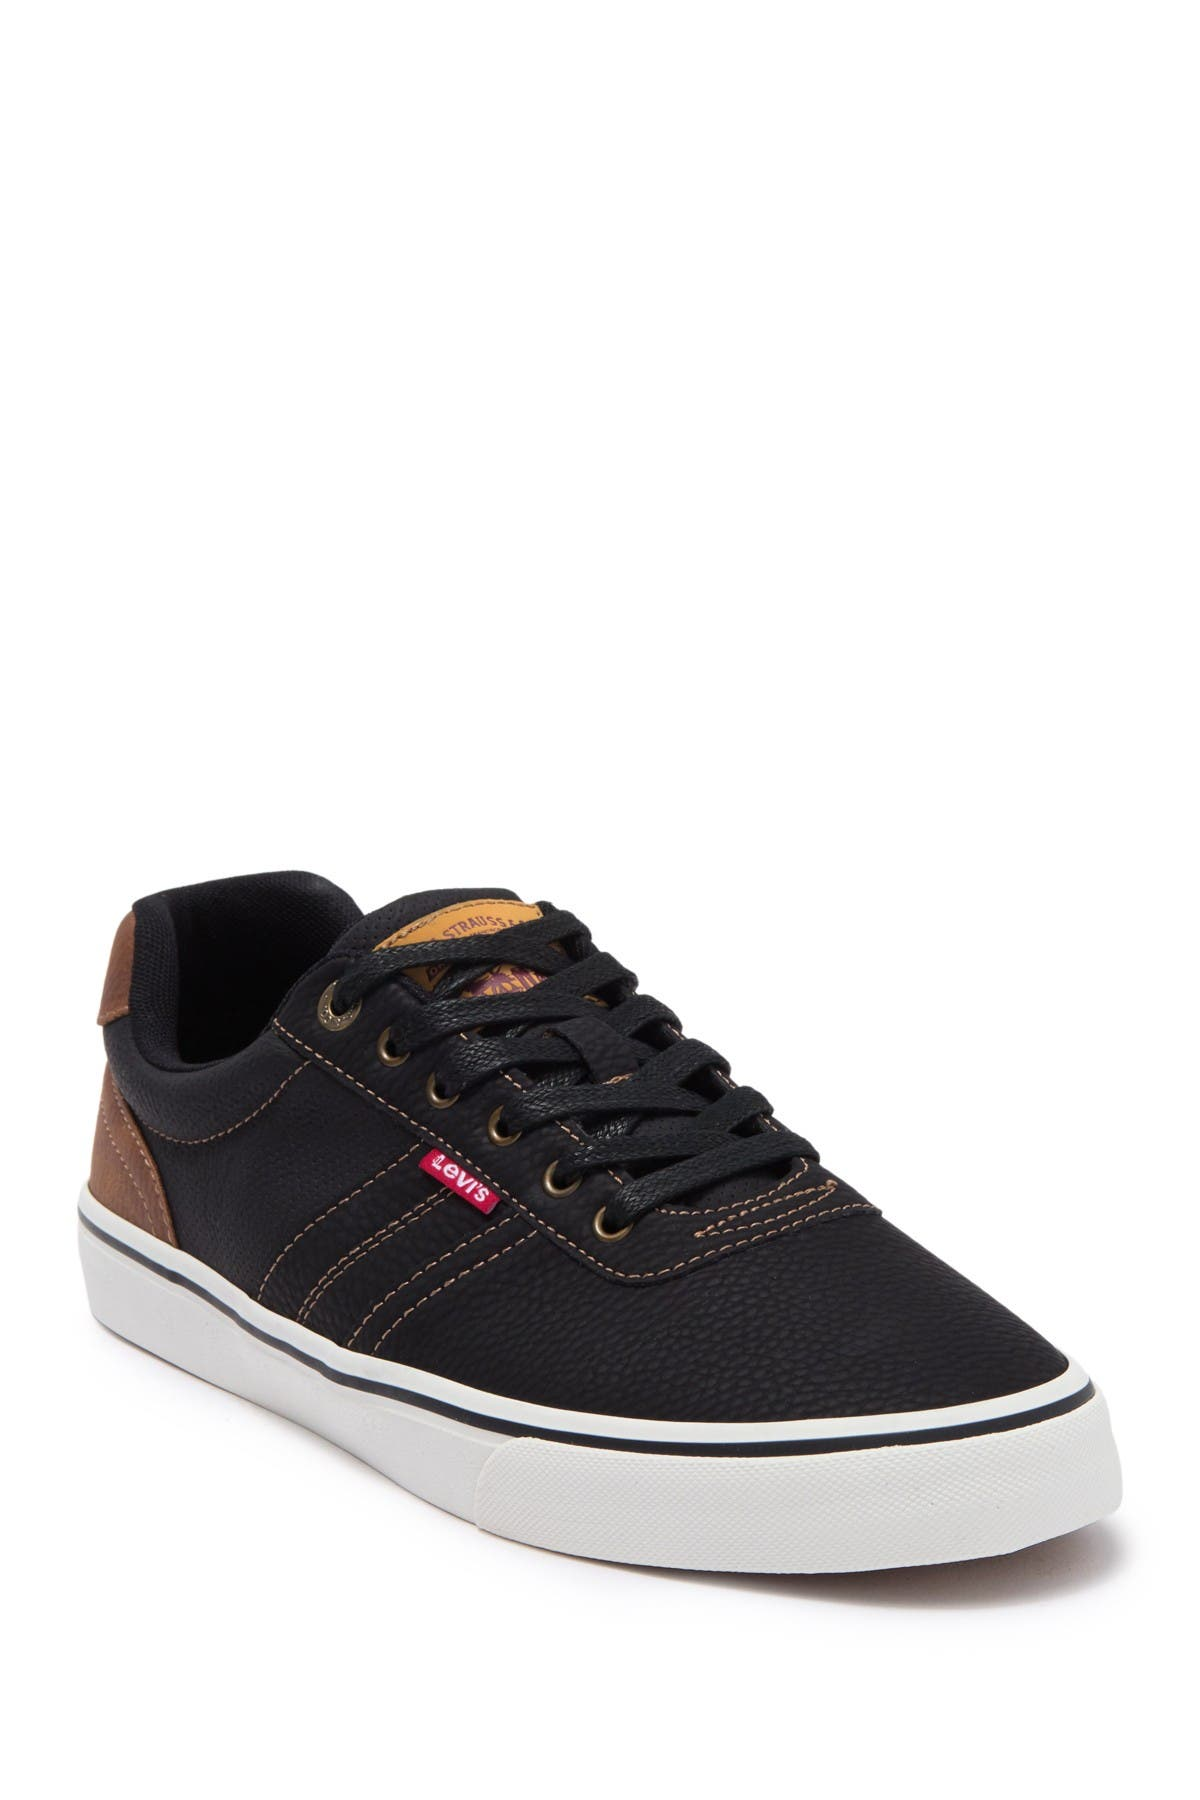 Image of Levi's Miles Side Stripe Lace-Up Sneaker